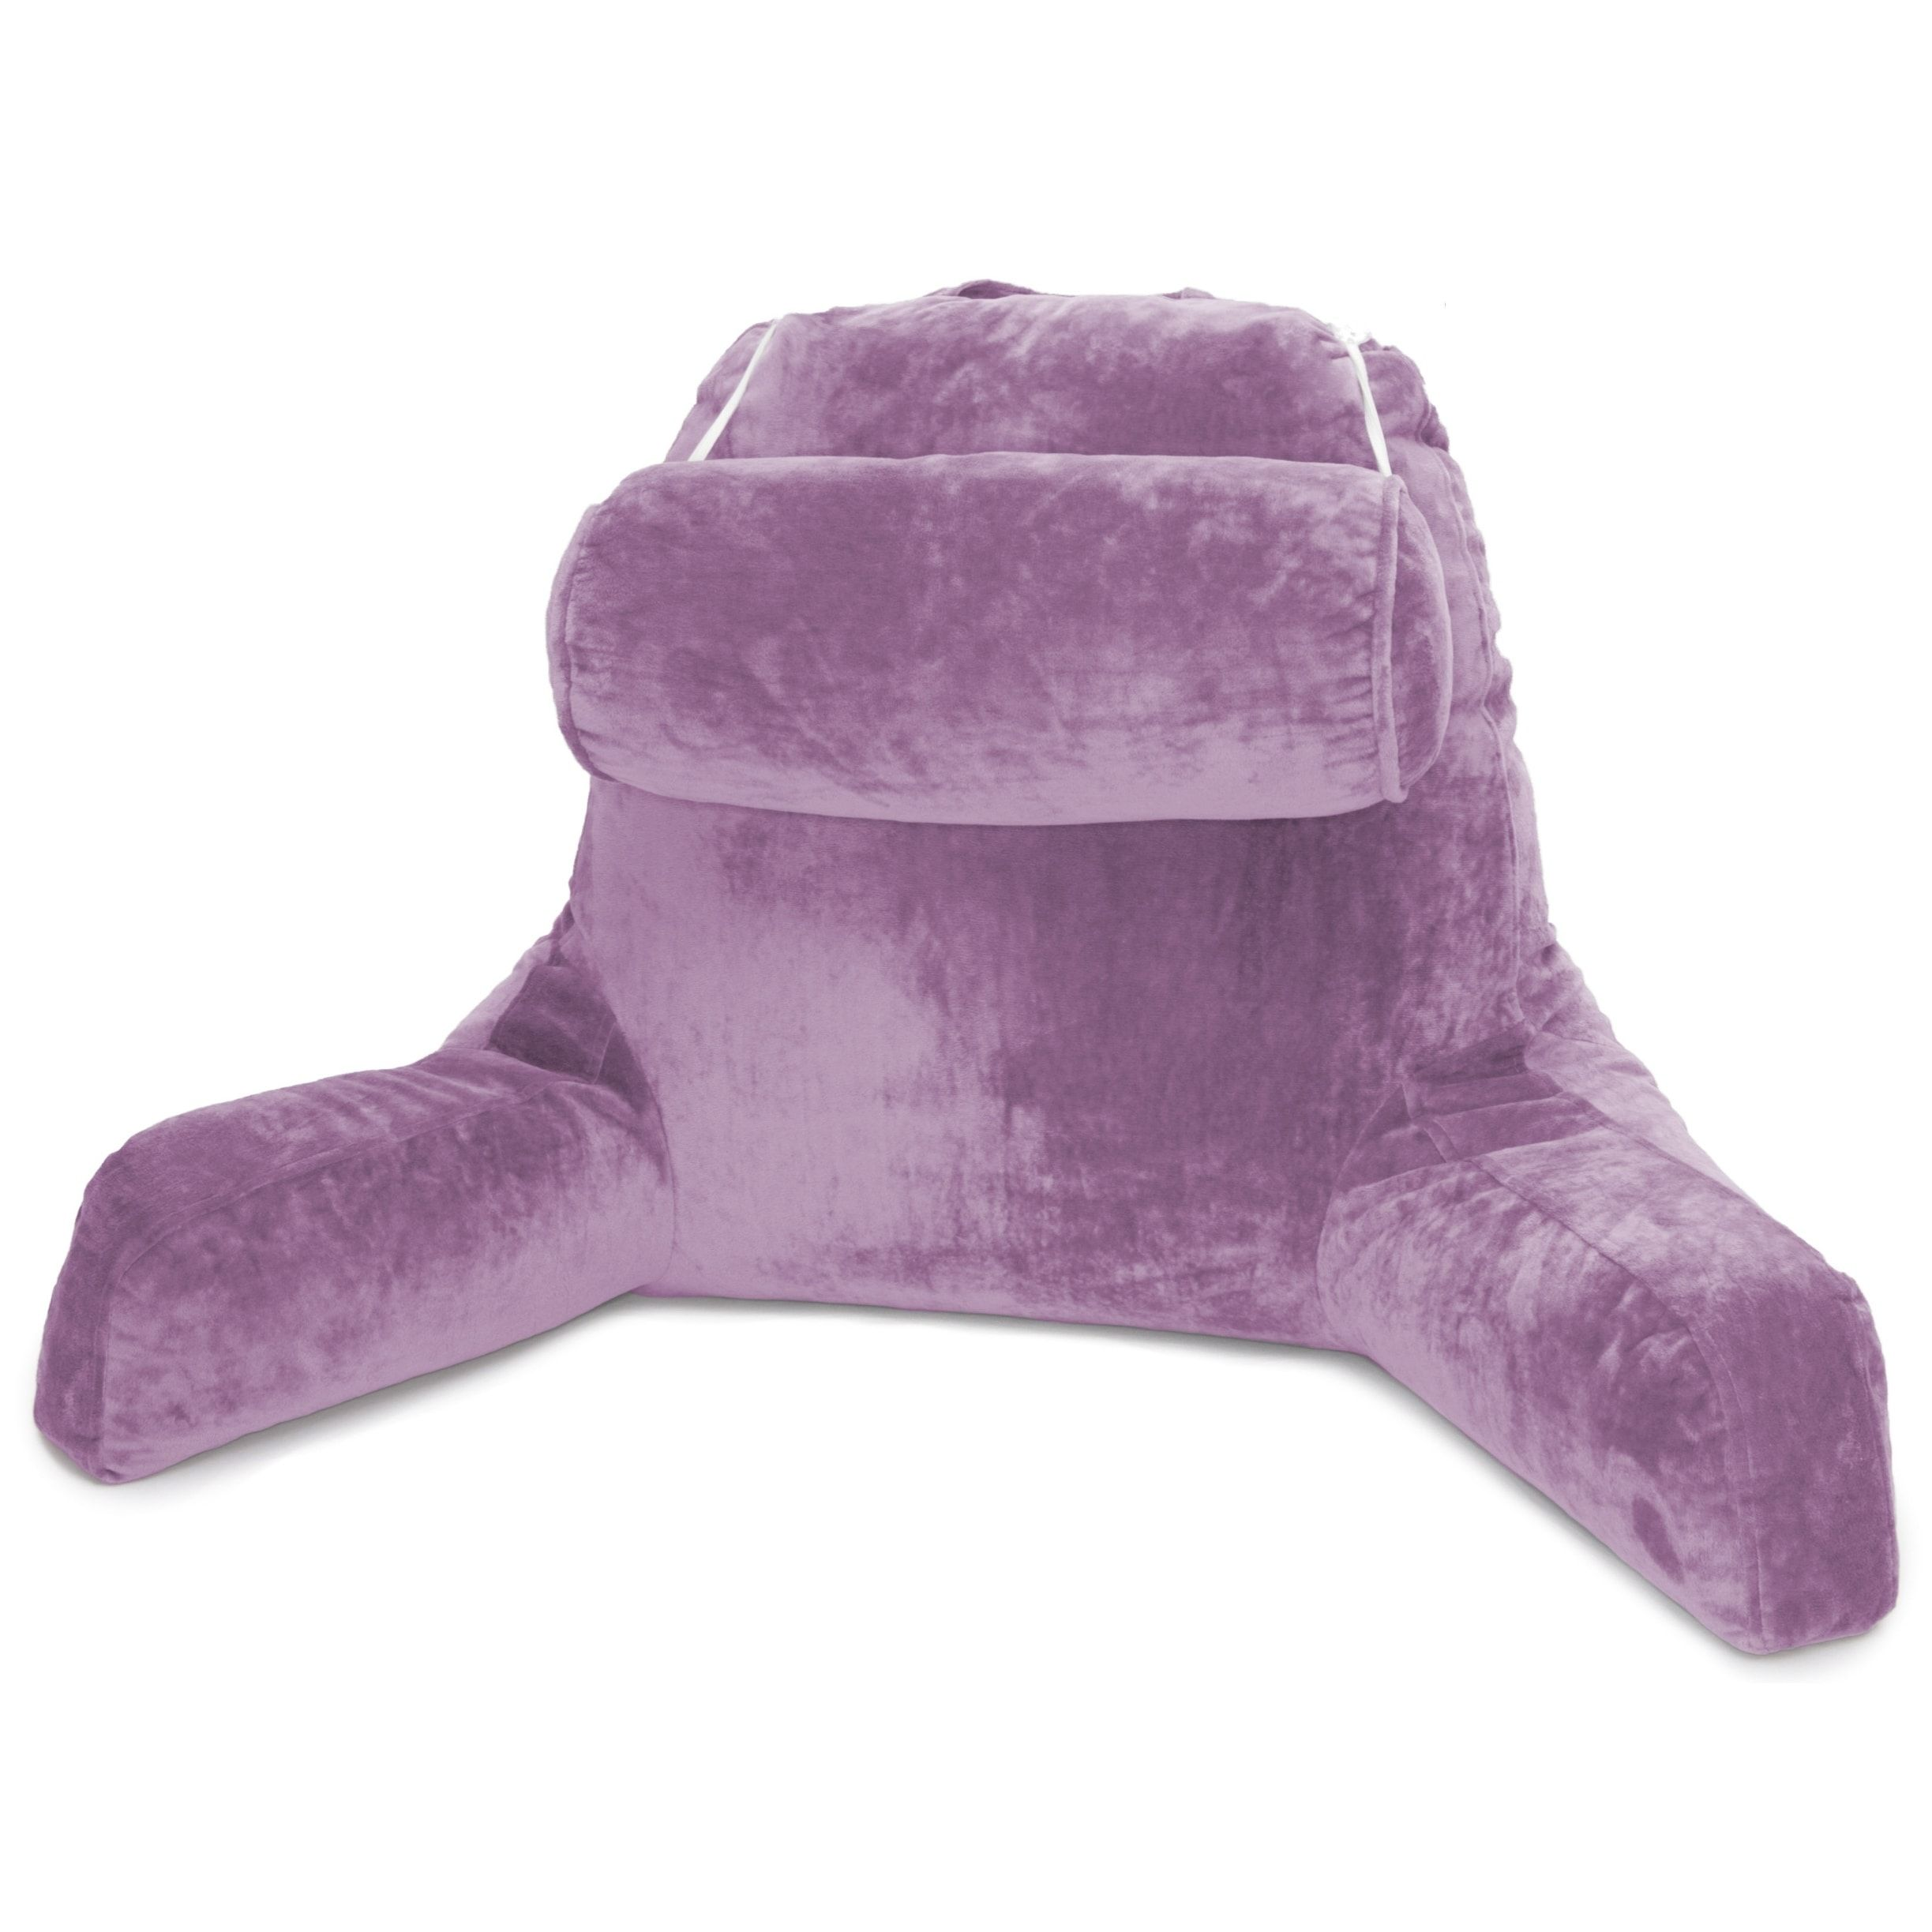 Light Purple COVER ONLY For the Husband Pillow Bedrest